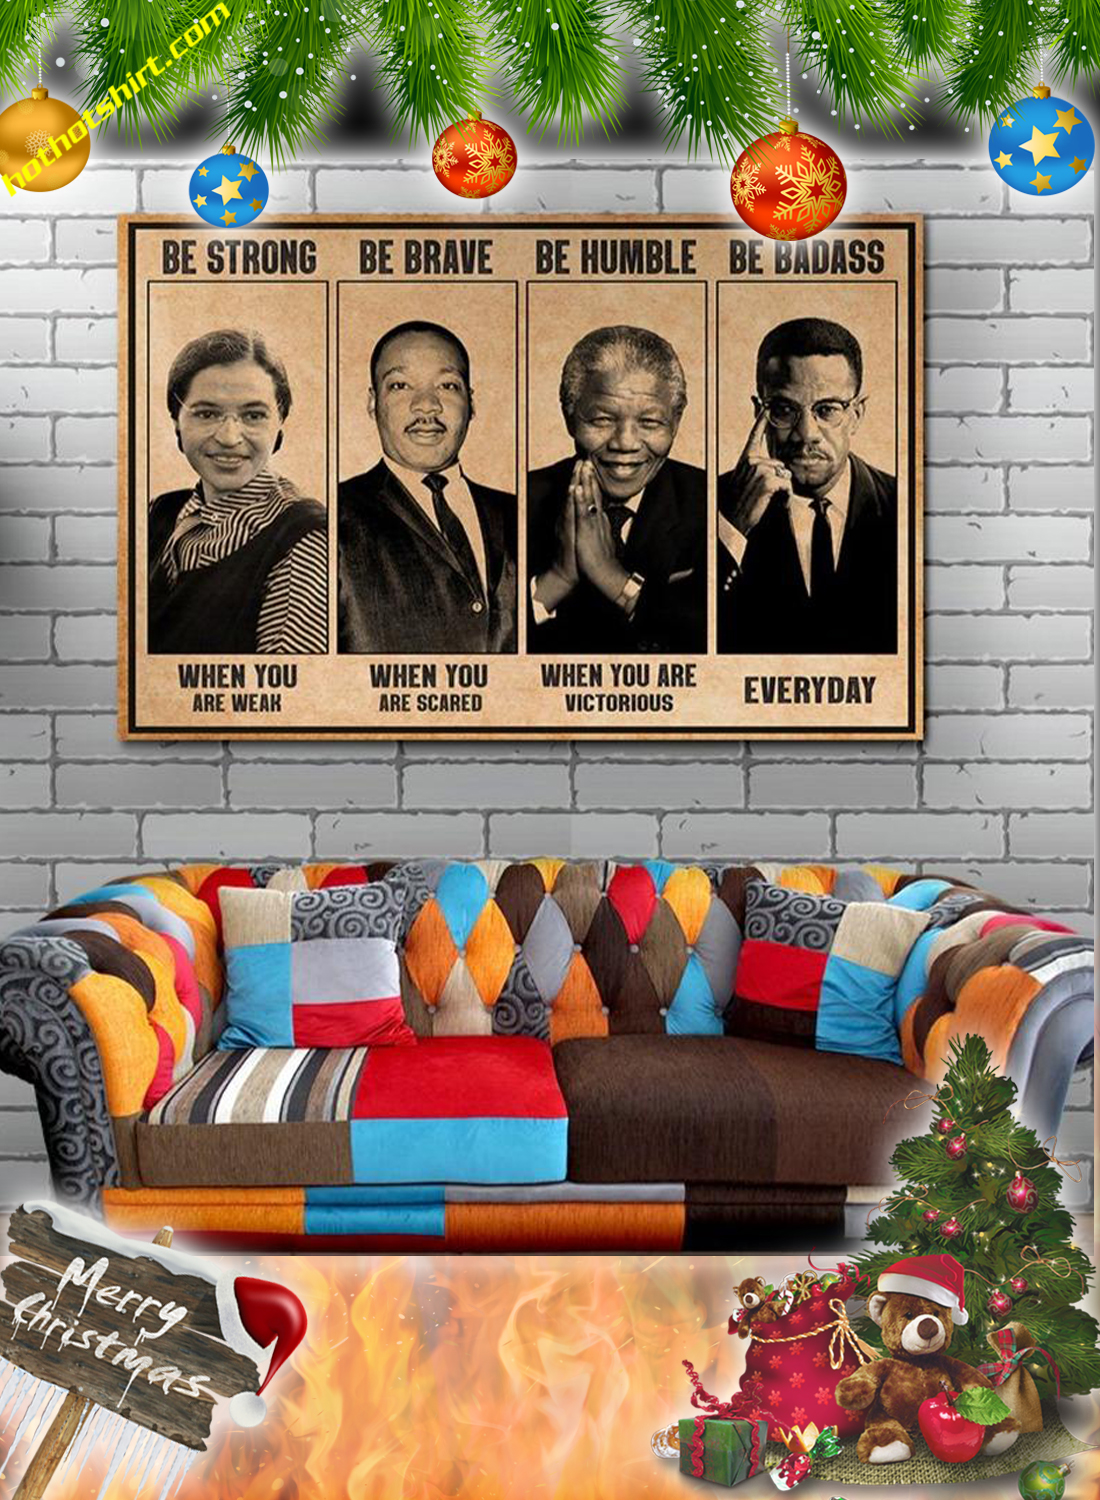 The civil rights leaders Be strong be brave be humble be badass canvas prints and poster 2